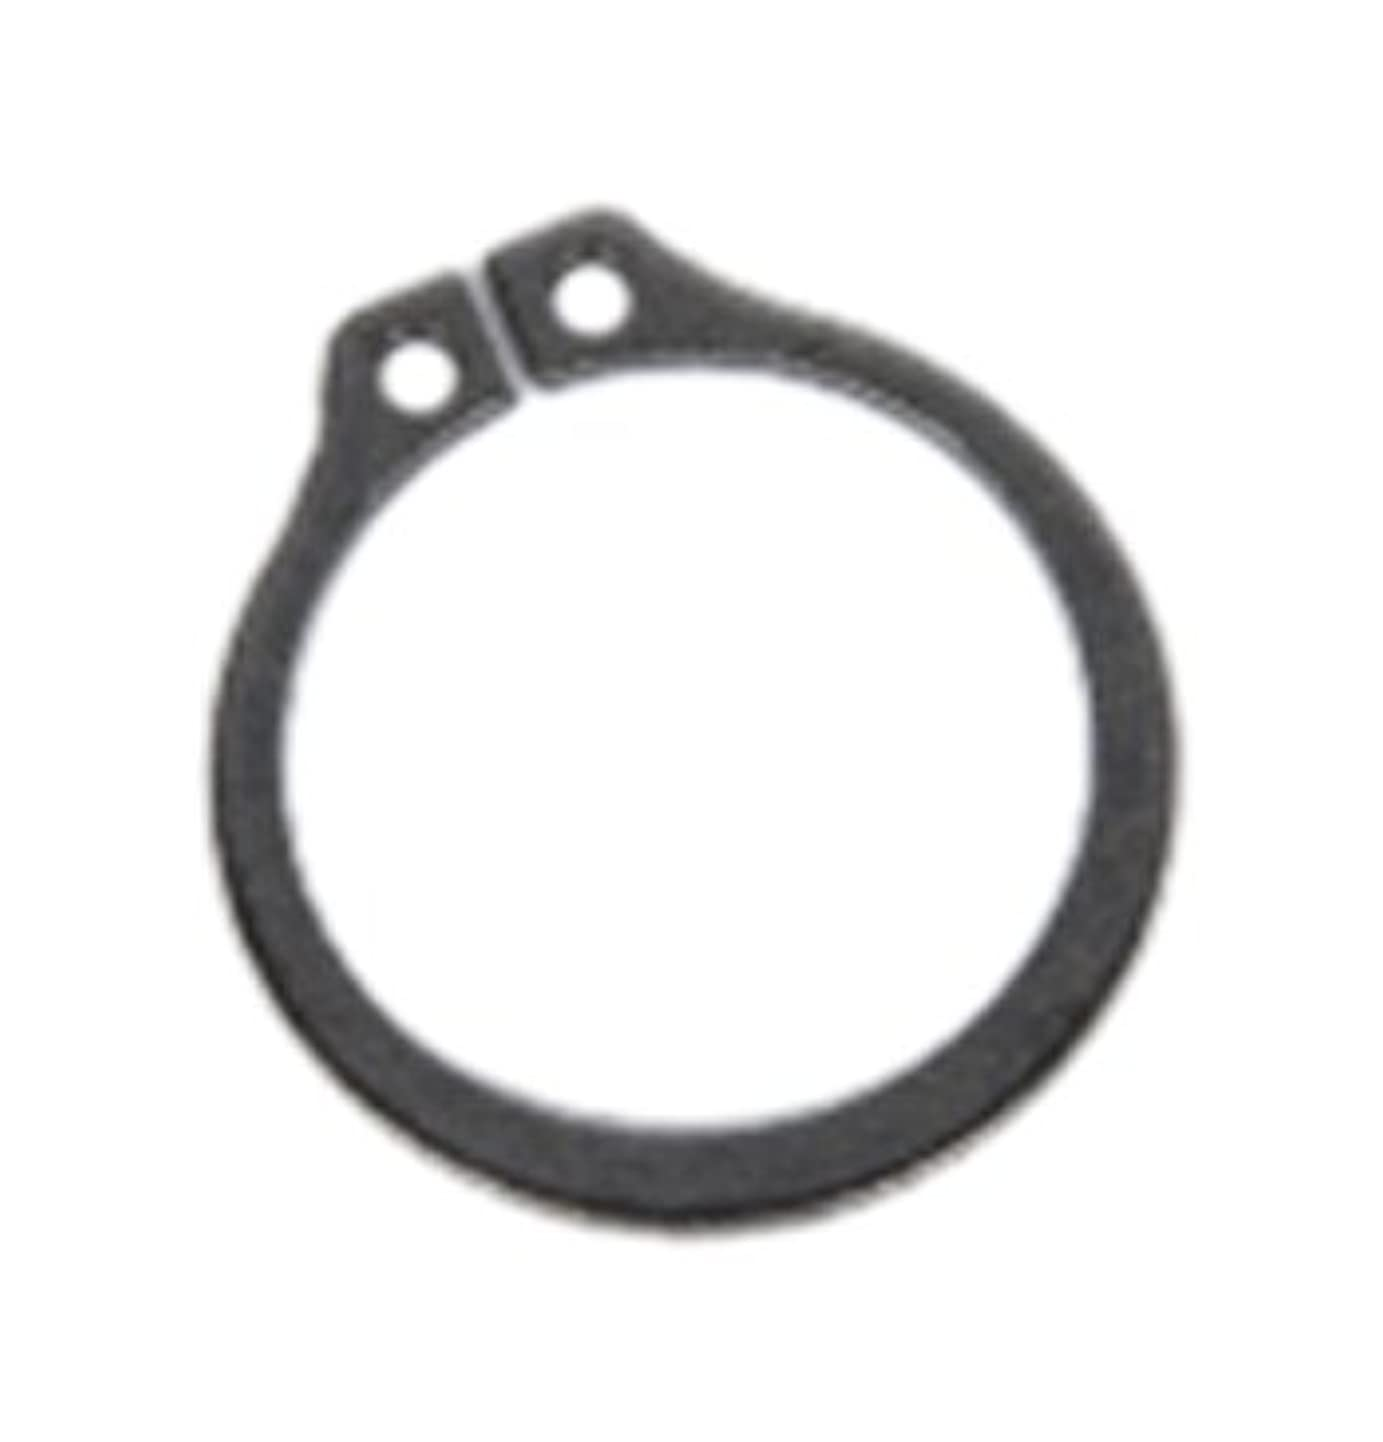 ACDelco 8675523 GM Original Equipment Automatic Transmission Overdrive Carrier Retaining Ring abwqrrgecox7